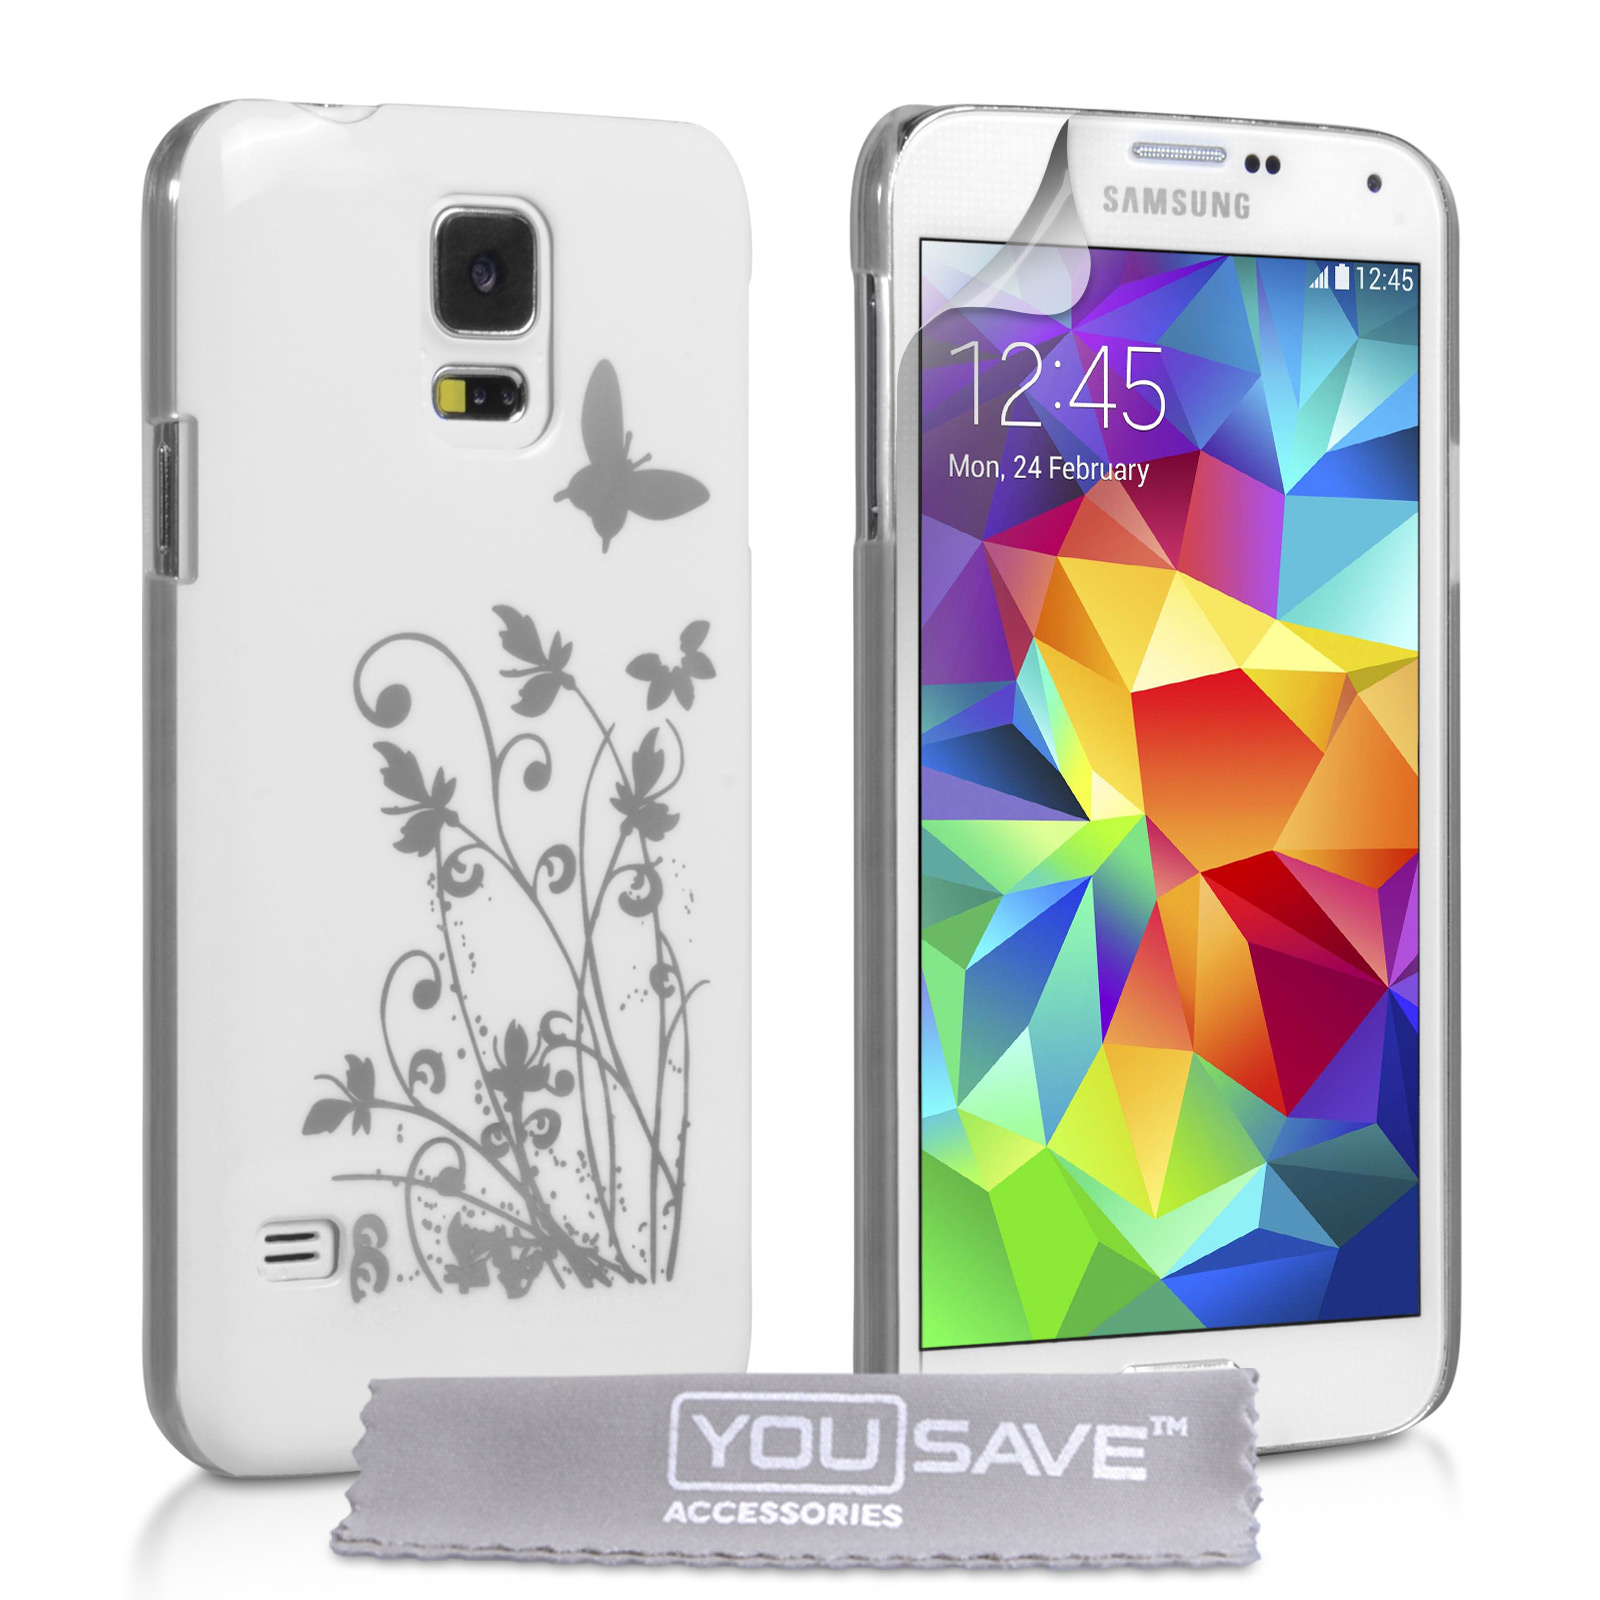 YouSave Samsung Galaxy S5 Floral Butterfly Hard Case - White-Silver